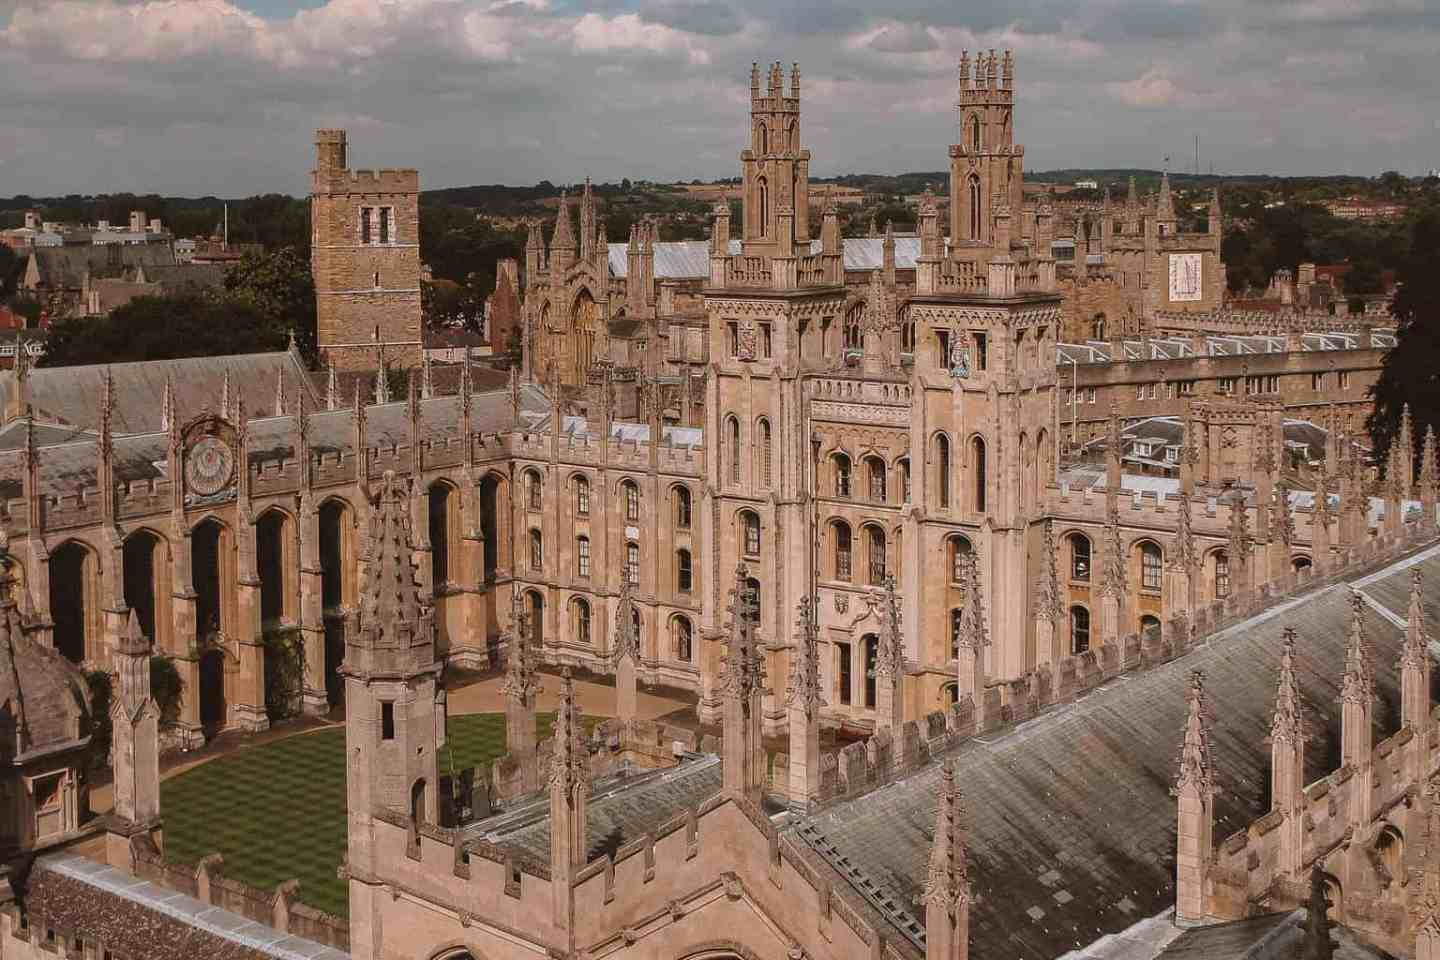 All Souls College - 10 Most Beautiful Colleges at Oxford University According to a Student